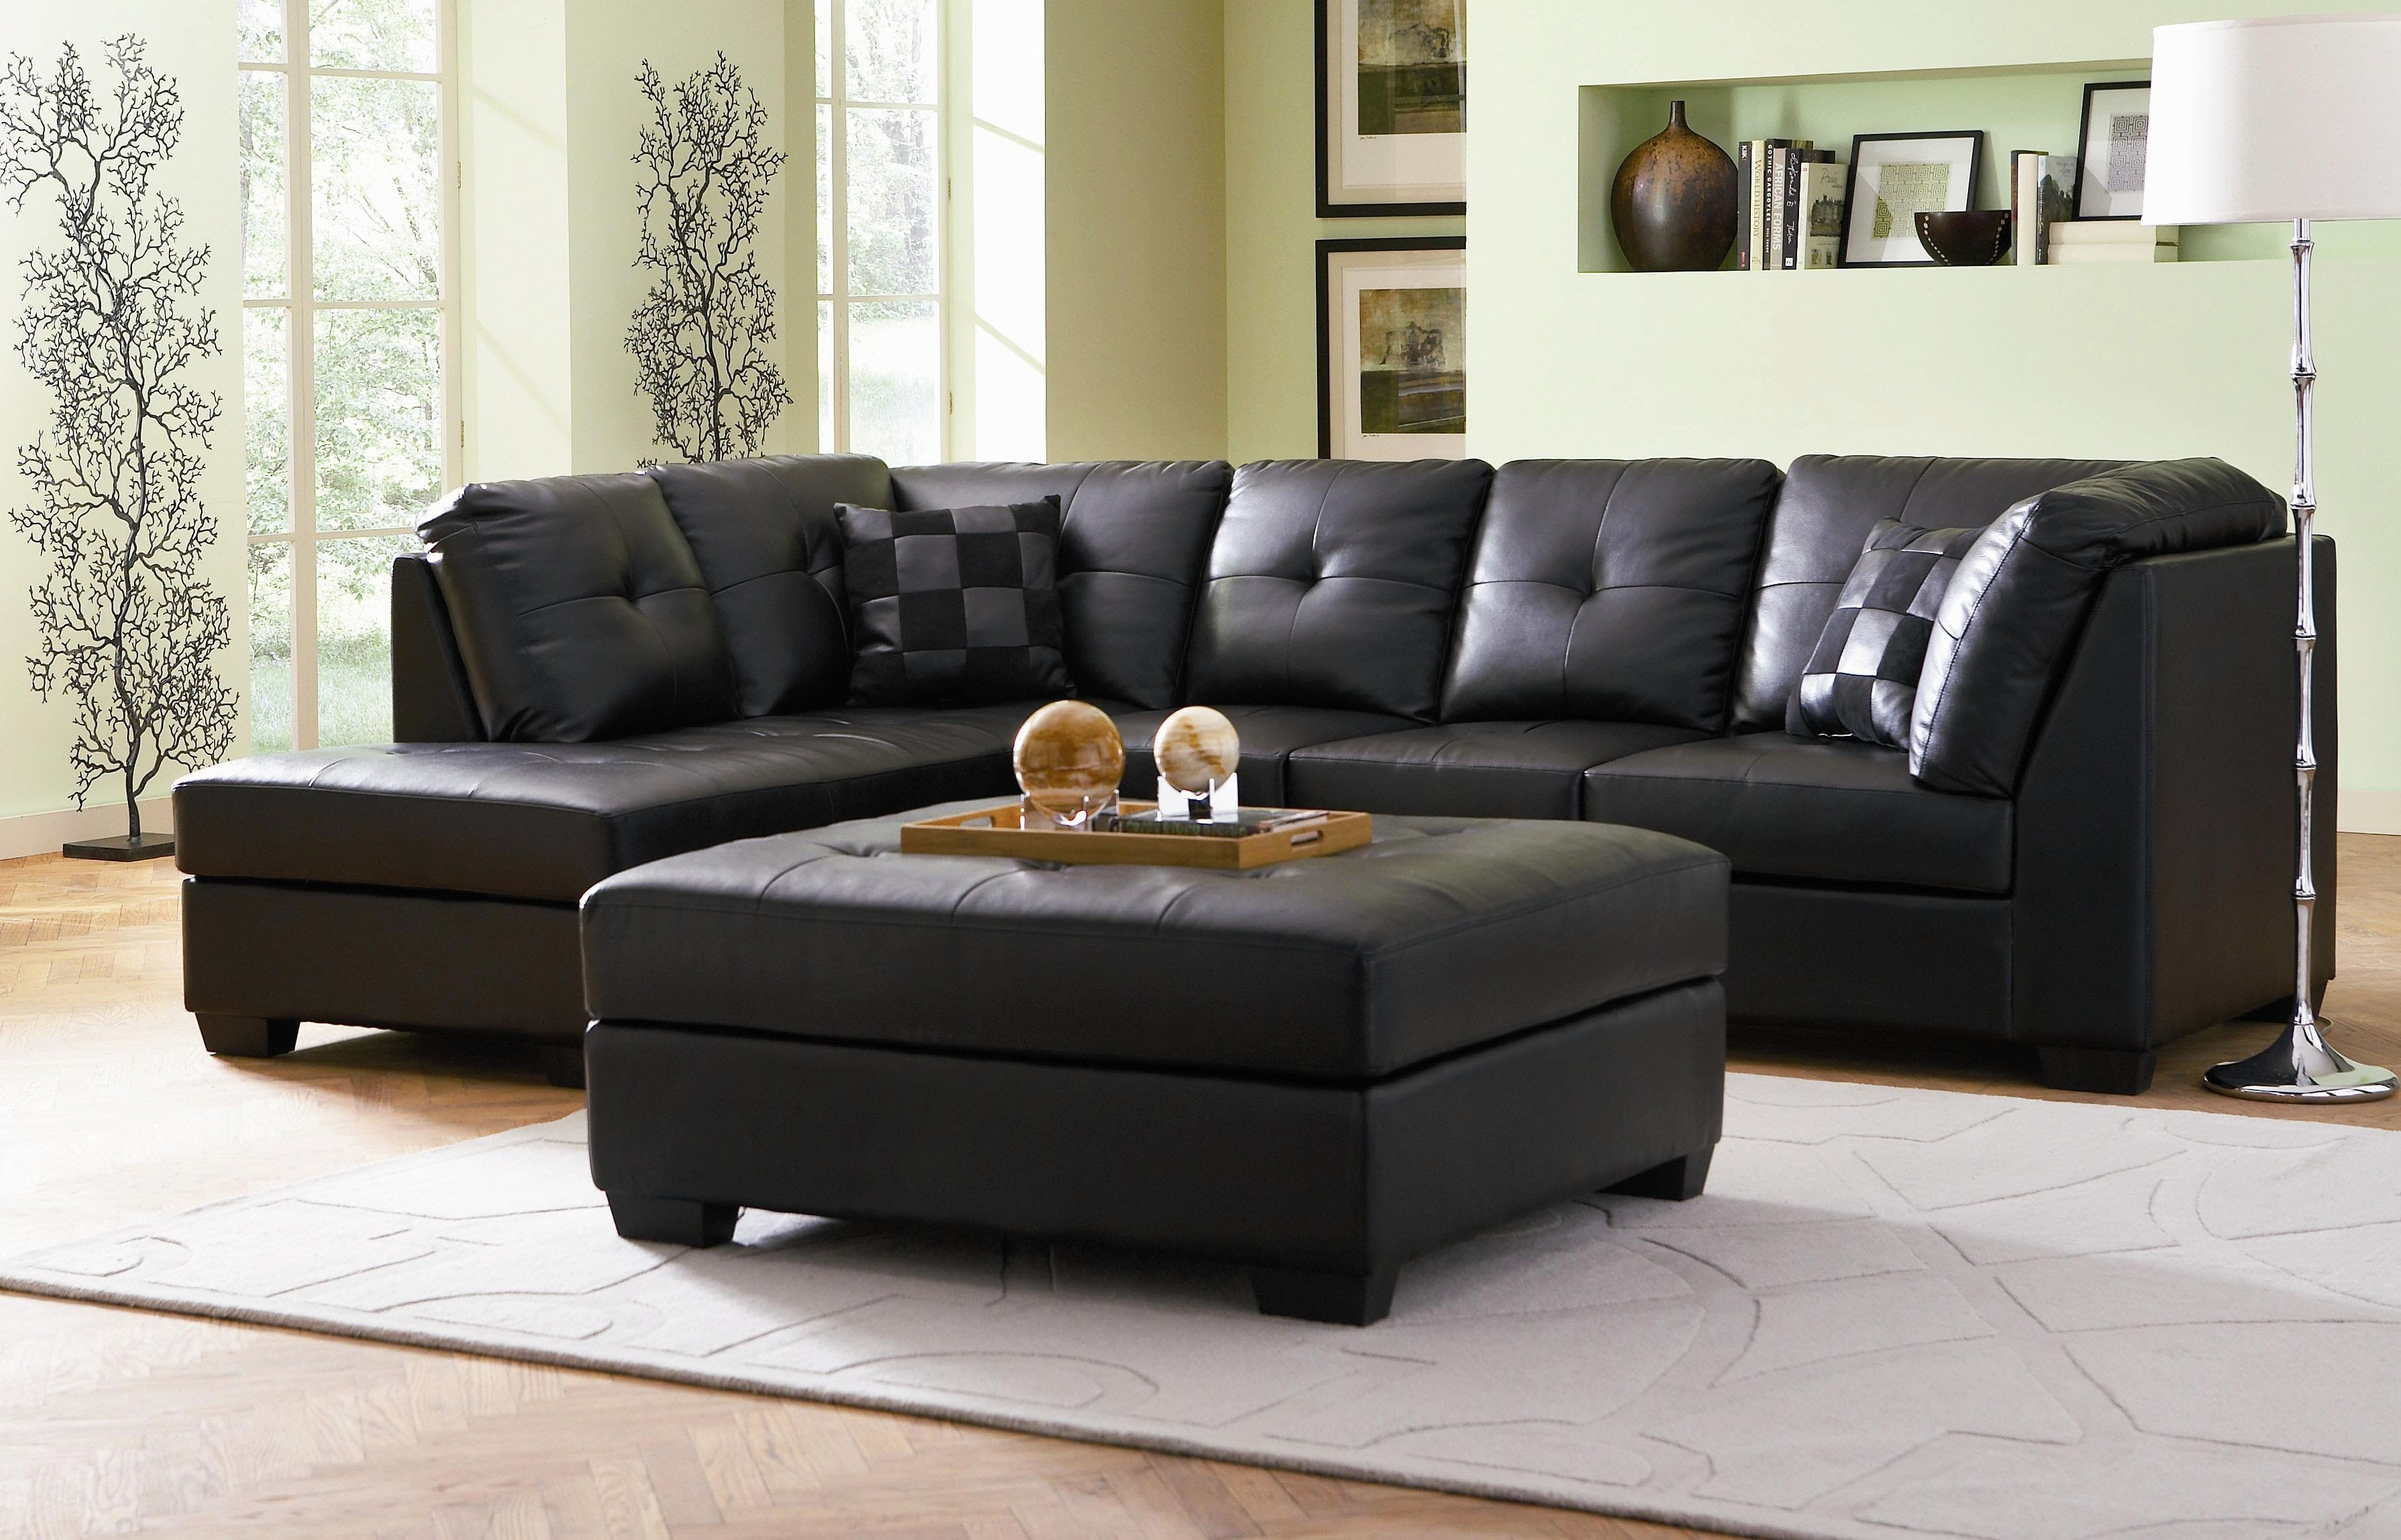 New Small Sectional Sofa Seattle – Best Sectional Sofa Ideas Pertaining To Seattle Sectional Sofas (View 6 of 10)